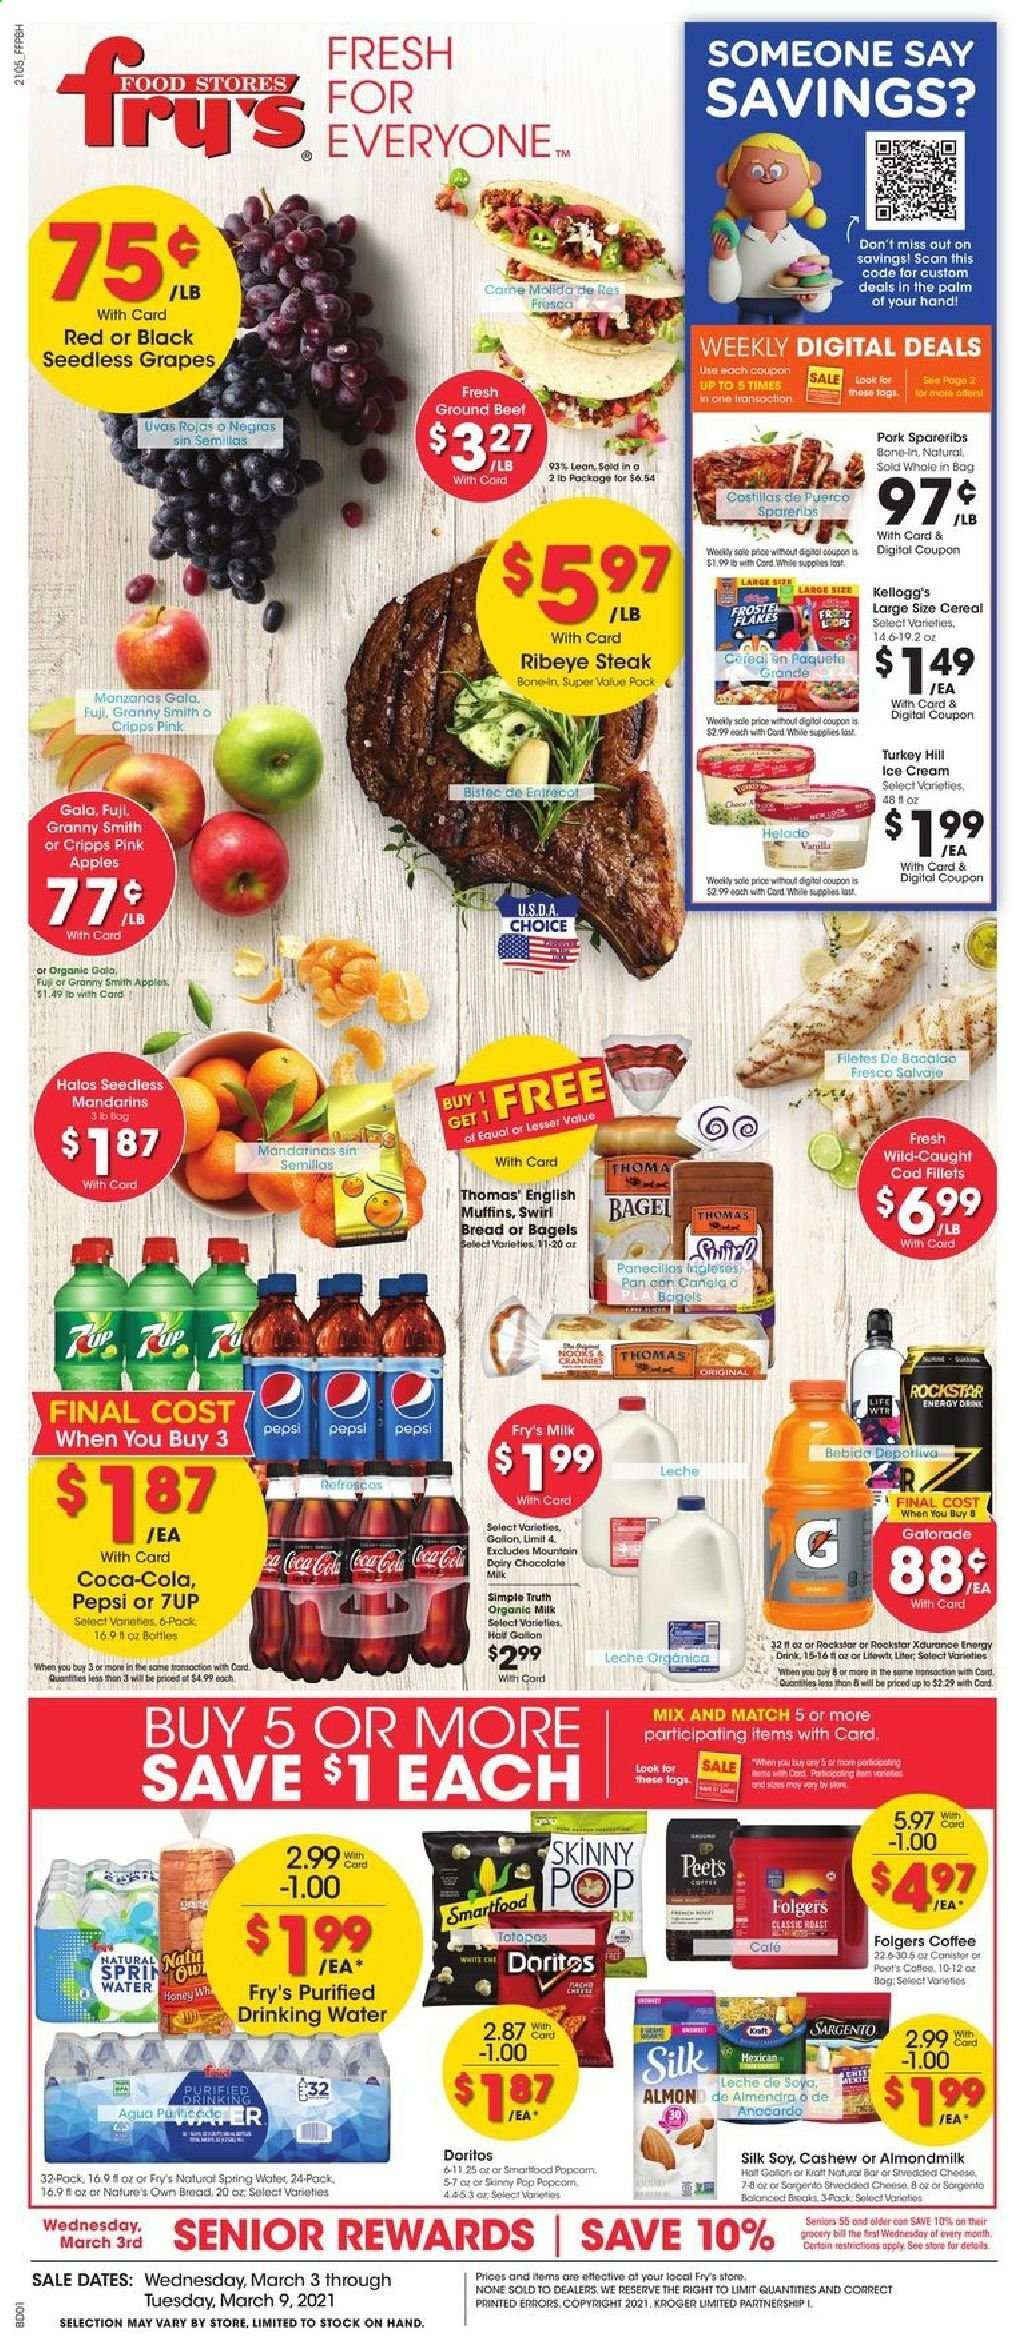 Fry's Flyer - 03.03.2021 - 03.09.2021 - Sales products - seedless grapes, bread, bagels, muffin, apples, bacalao, cod, english muffins, cheese, Sargento, almond milk, organic milk, Silk, Kellogg's, Doritos, Smartfood, popcorn, Skinny Pop, mandarines, cereals, honey, Coca-Cola, Pepsi, energy drink, 7UP, Rockstar, Gatorade, spring water, coffee, Folgers, L'Or, turkey, beef meat, beef steak, ground beef, steak, rib eye, ribeye steak, pork spare ribs, pan, Nature's Own, water. Page 1.